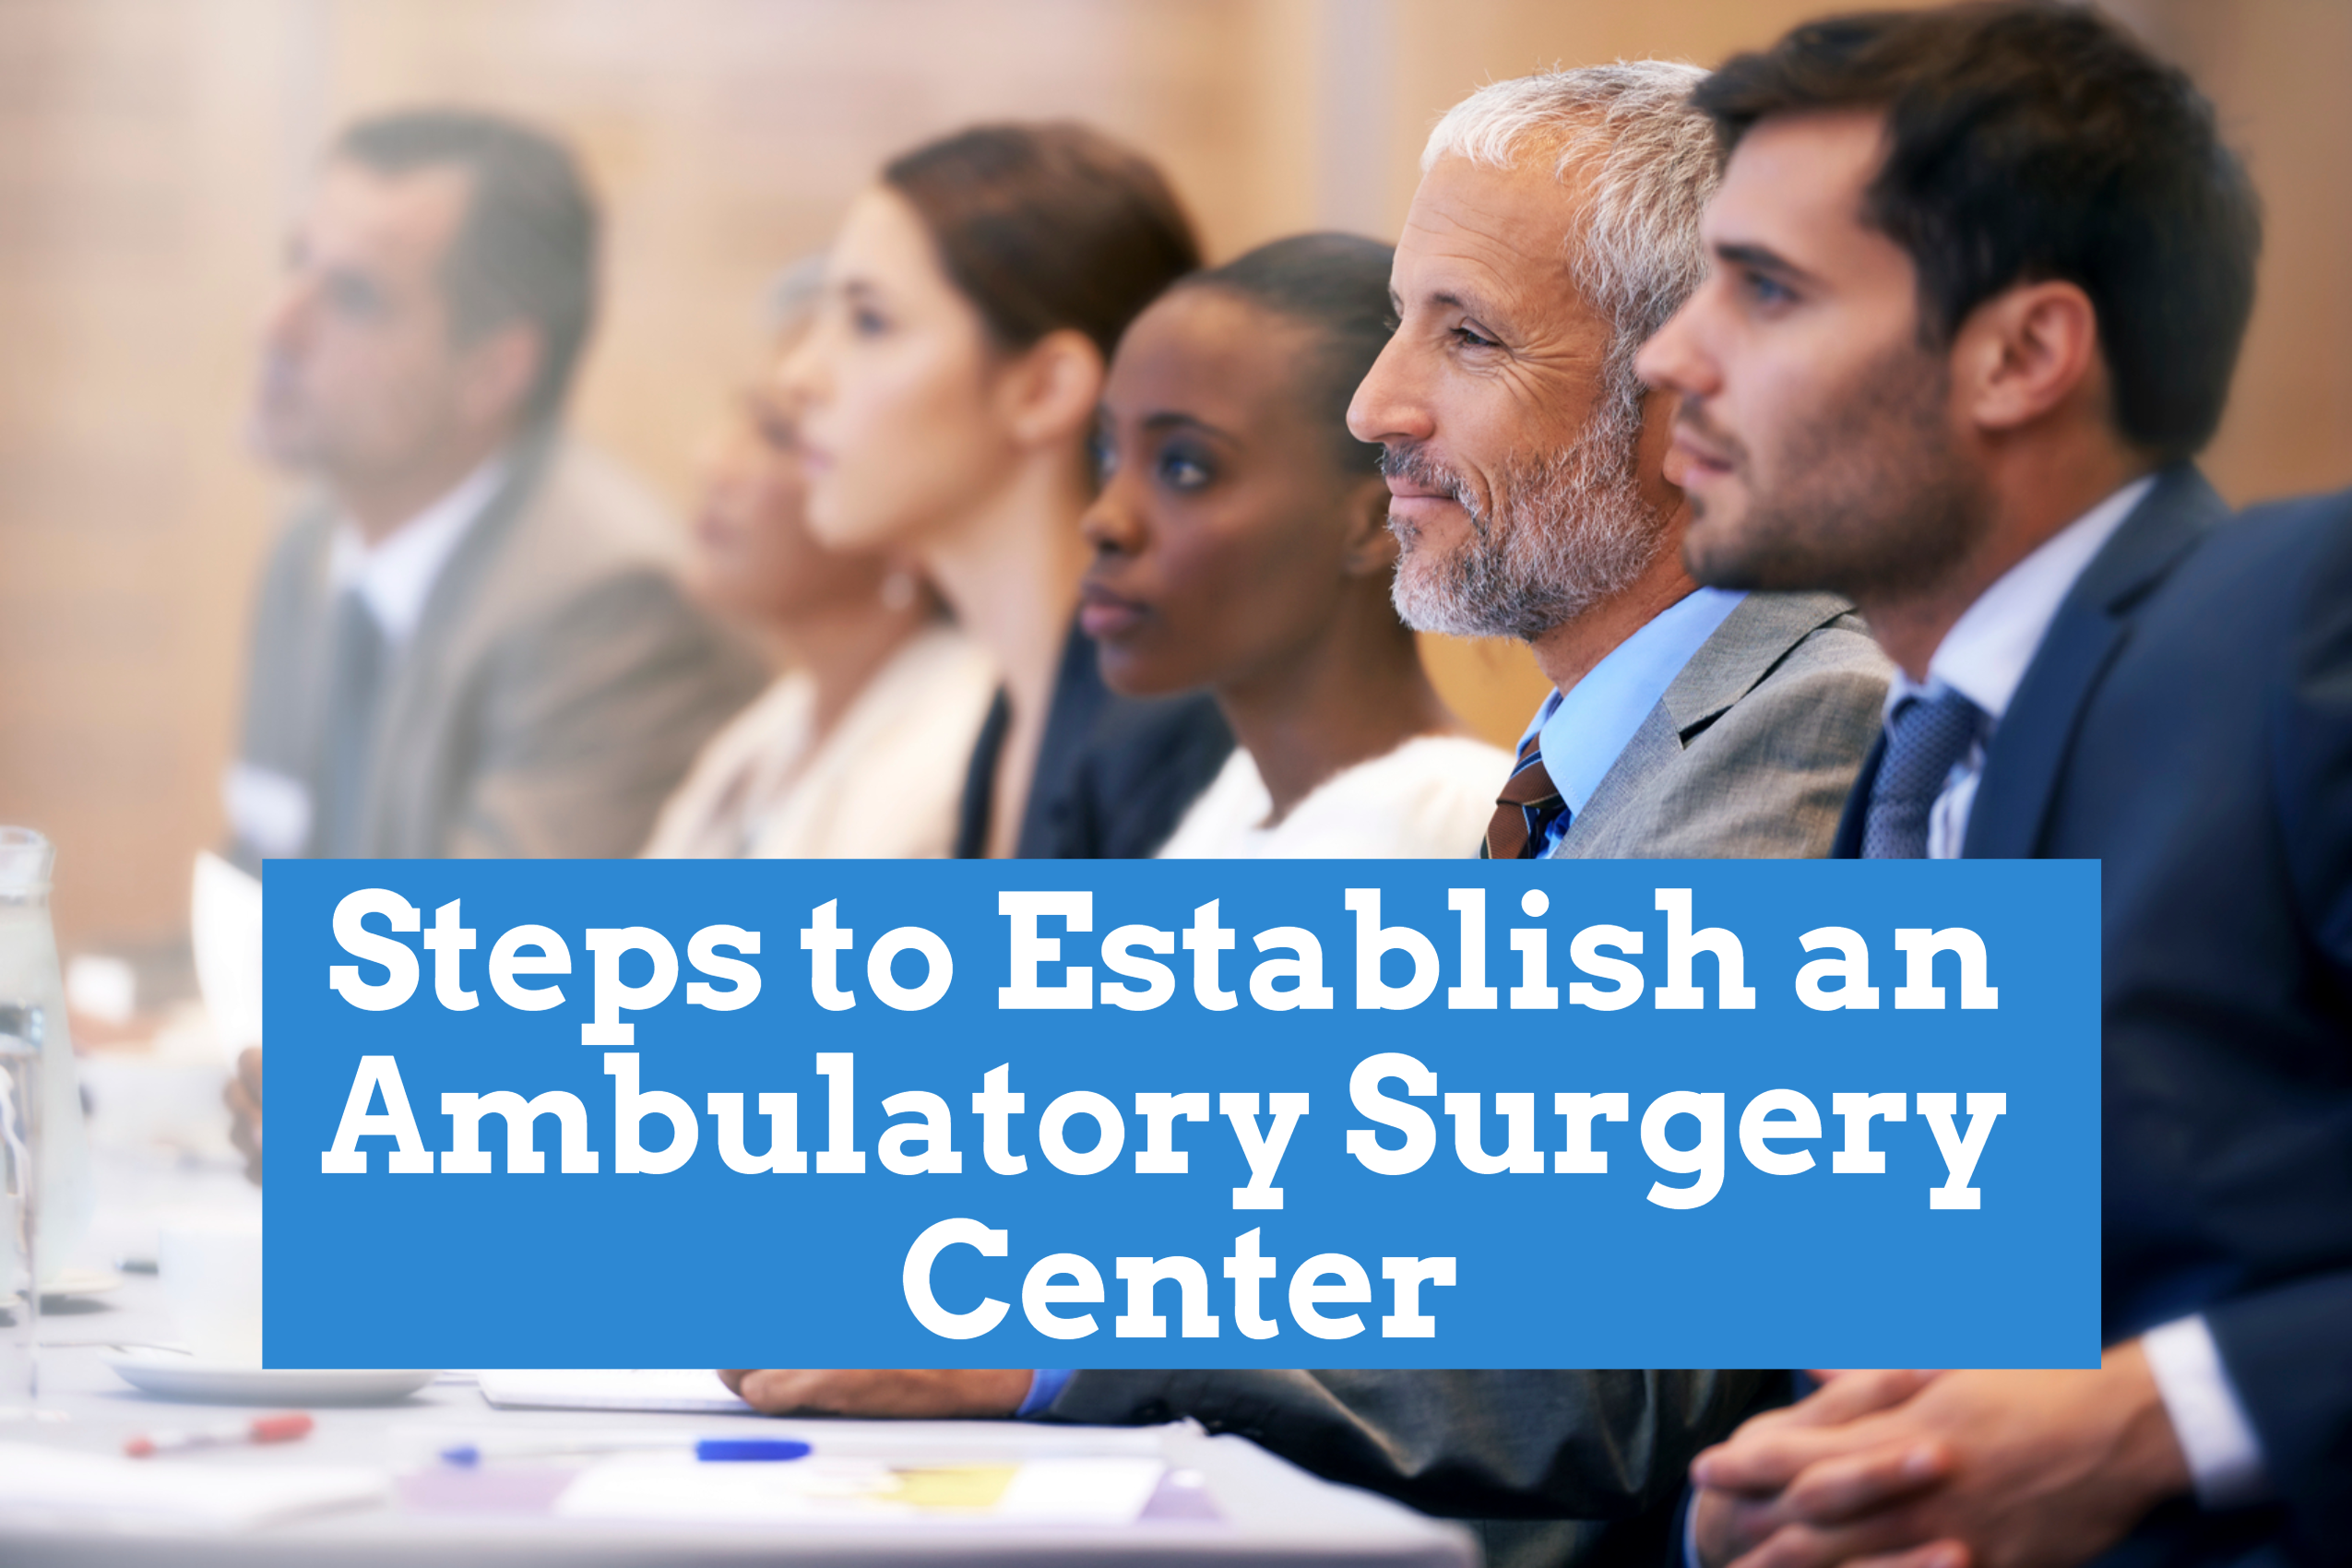 Steps to Establish an Ambulatory Surgery Center